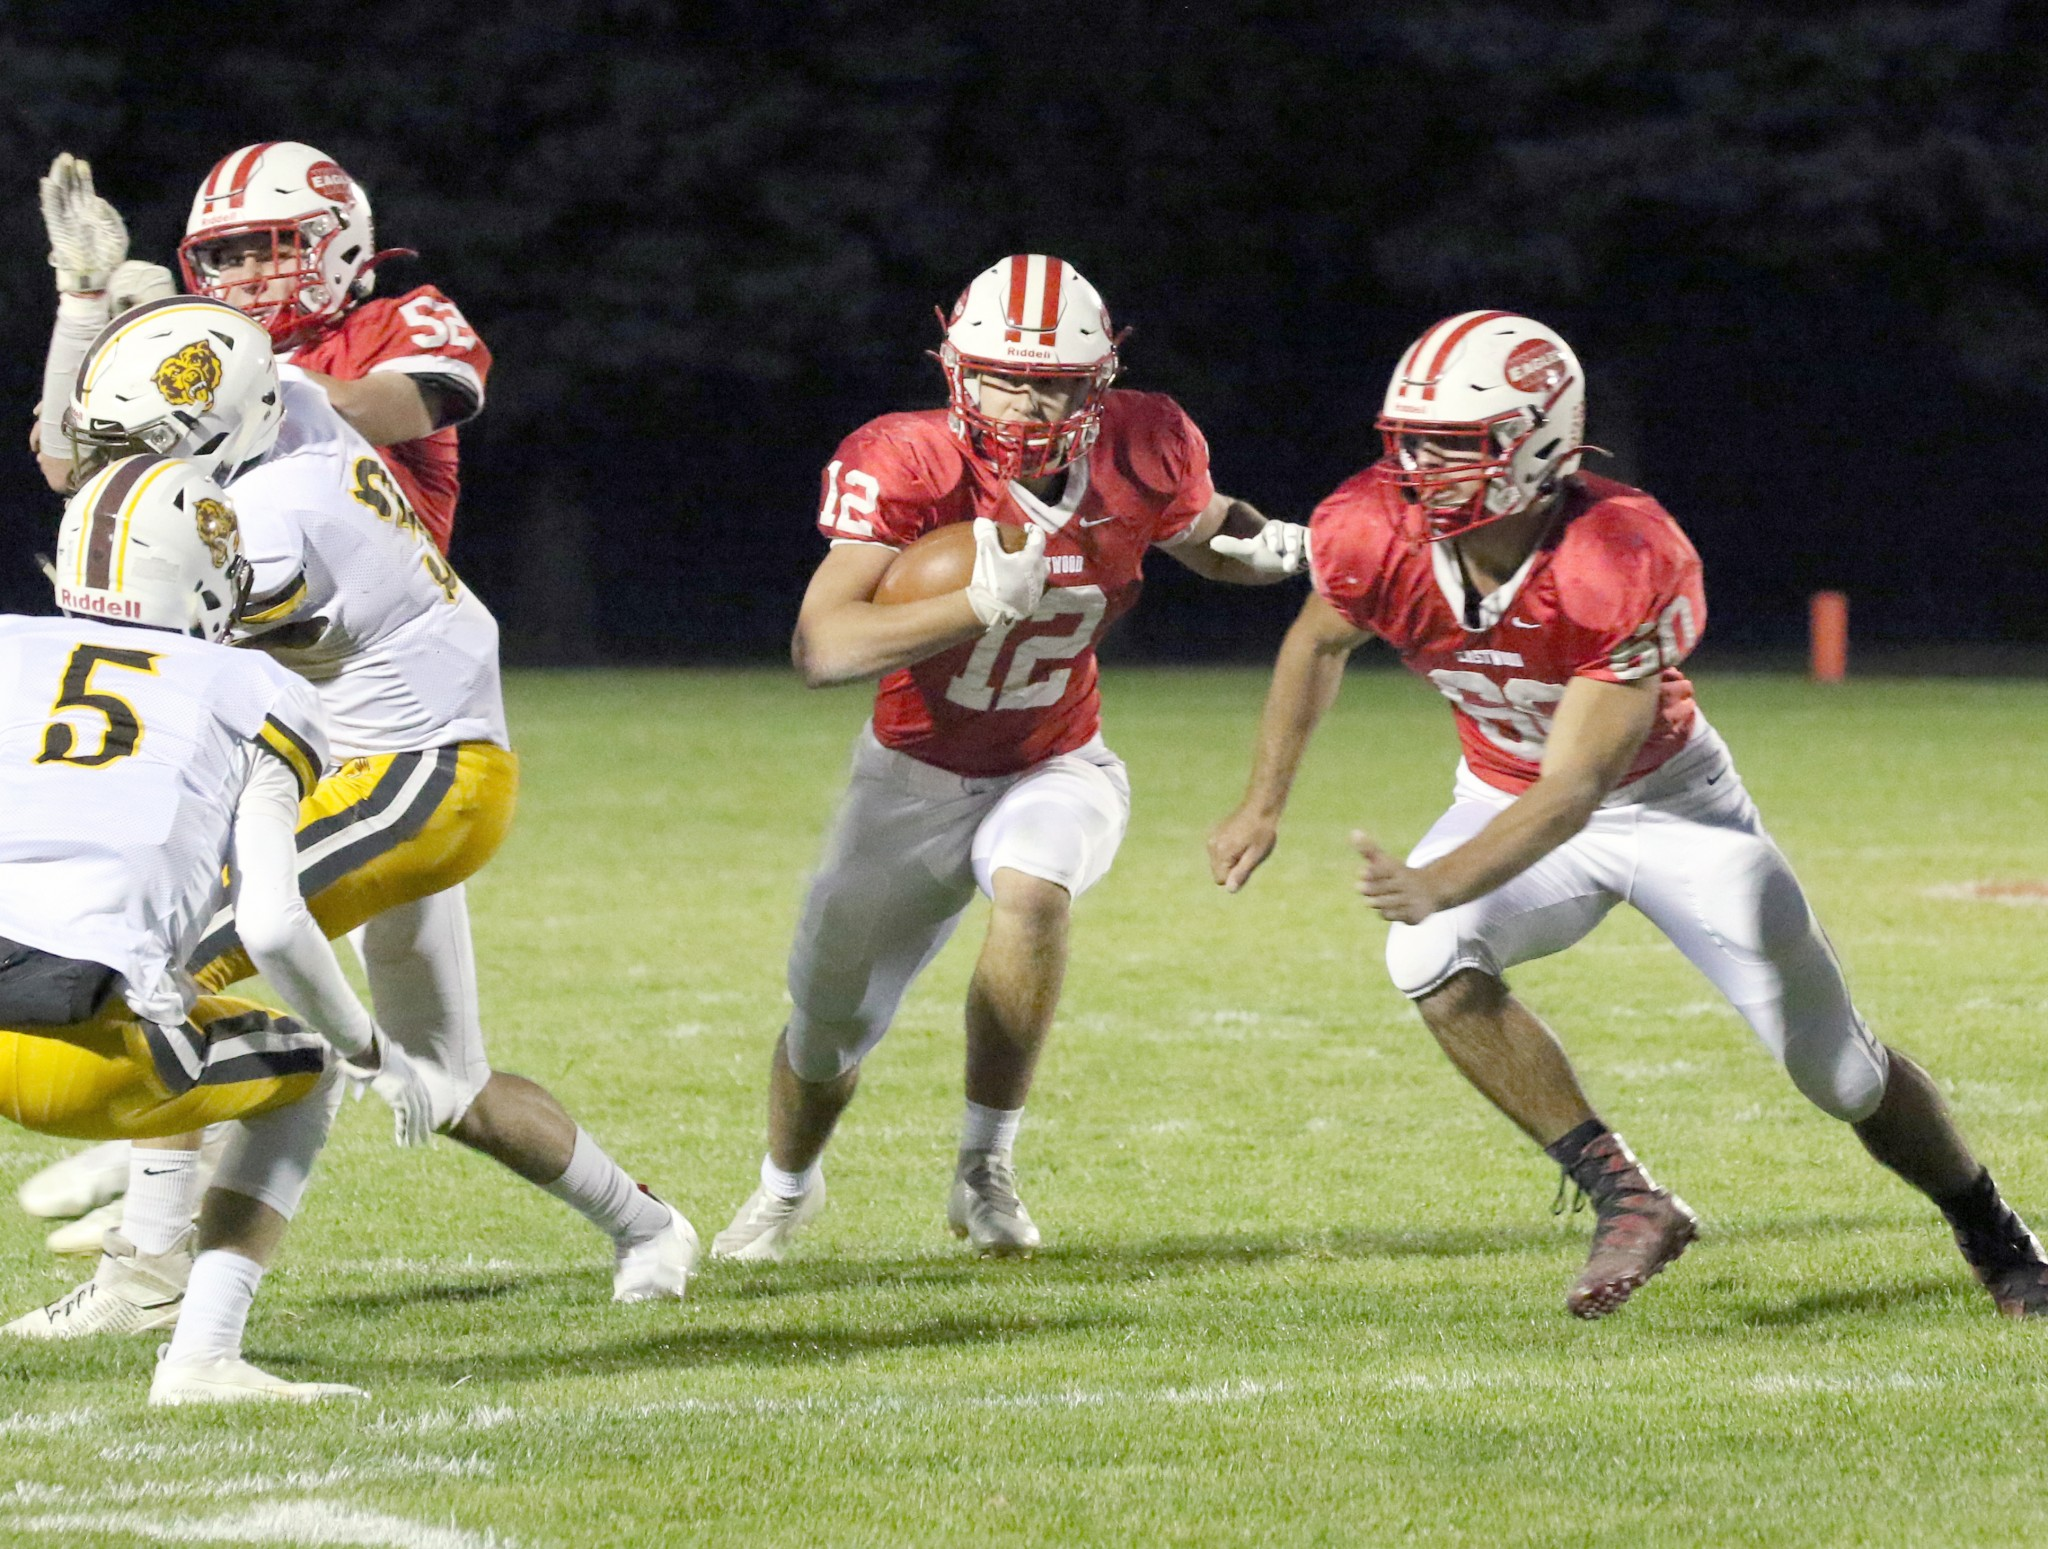 """Eastwood 6-foot-2, 197-pound senior offensive lineman Blake Landis, voted last year&#039;s Alan Miller Jewelers All-Press Lineman of the Year, looks to chase down an Apple Creek Waynedale defender so 6-2, 218-pound junior back Emmet Getz can find running room. (Press photo by Lee Welch/<a href=""""http://www.FamilyPhotoGroup.com"""">www.FamilyPhotoGroup.com</a>)"""